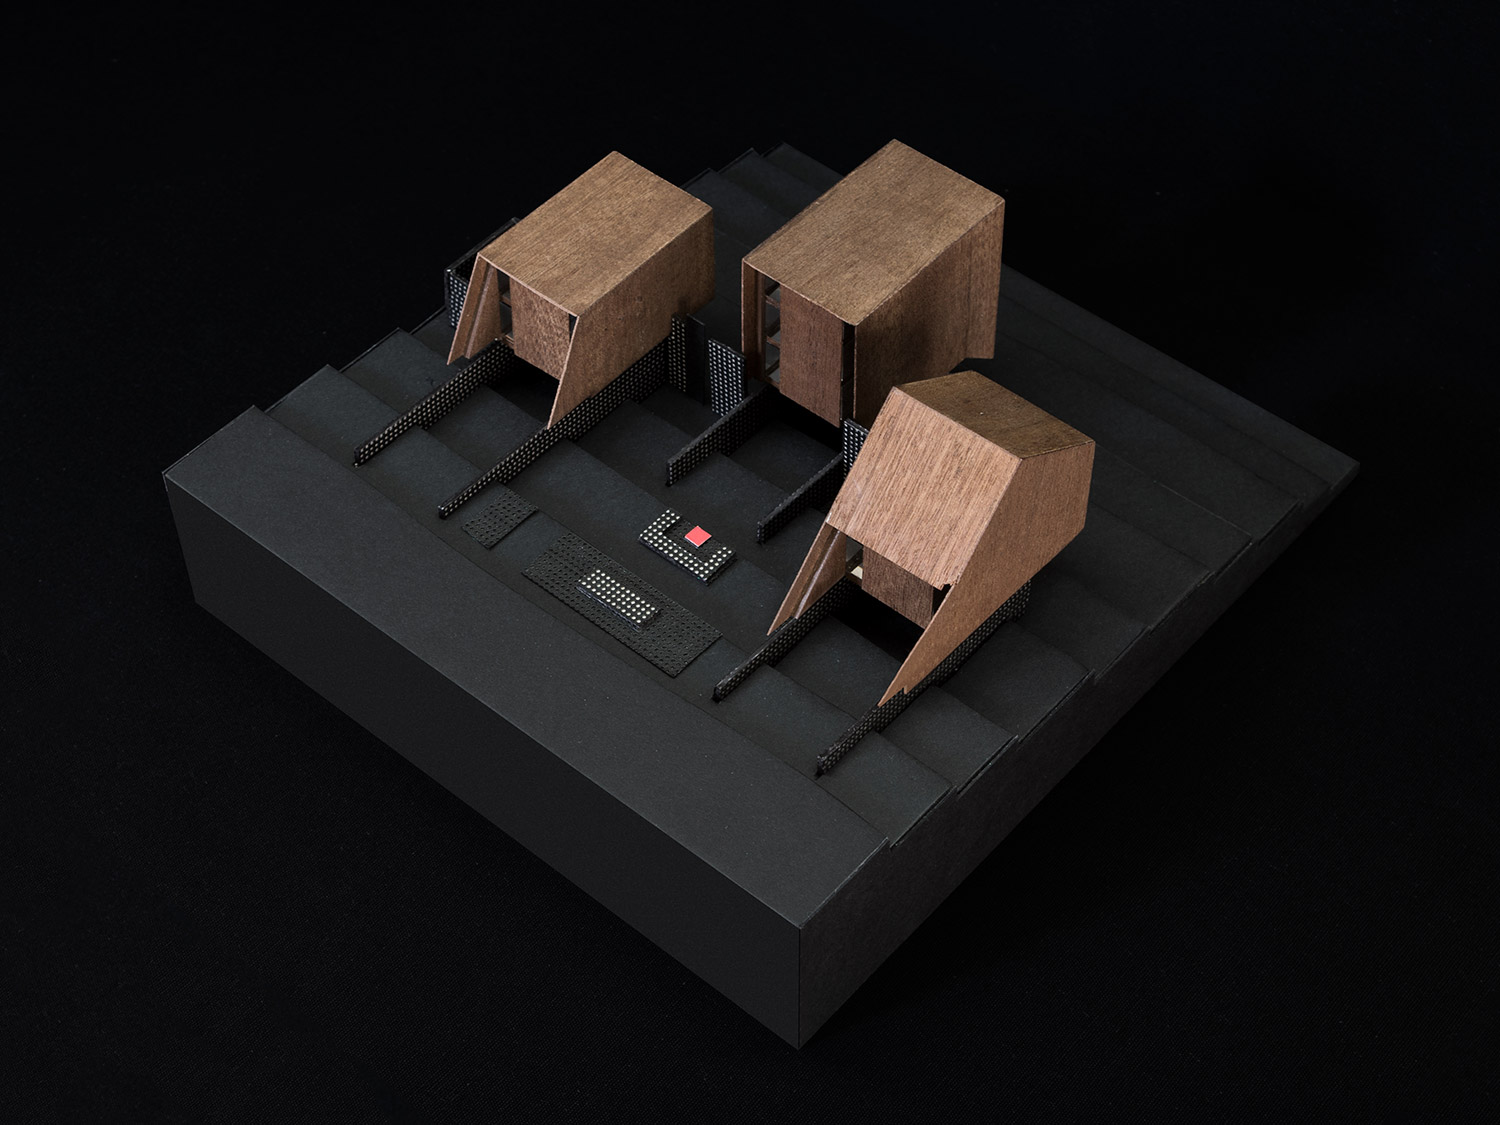 hyde-and-hyde-VHR-faroe-islands-housing-model-rear.jpg